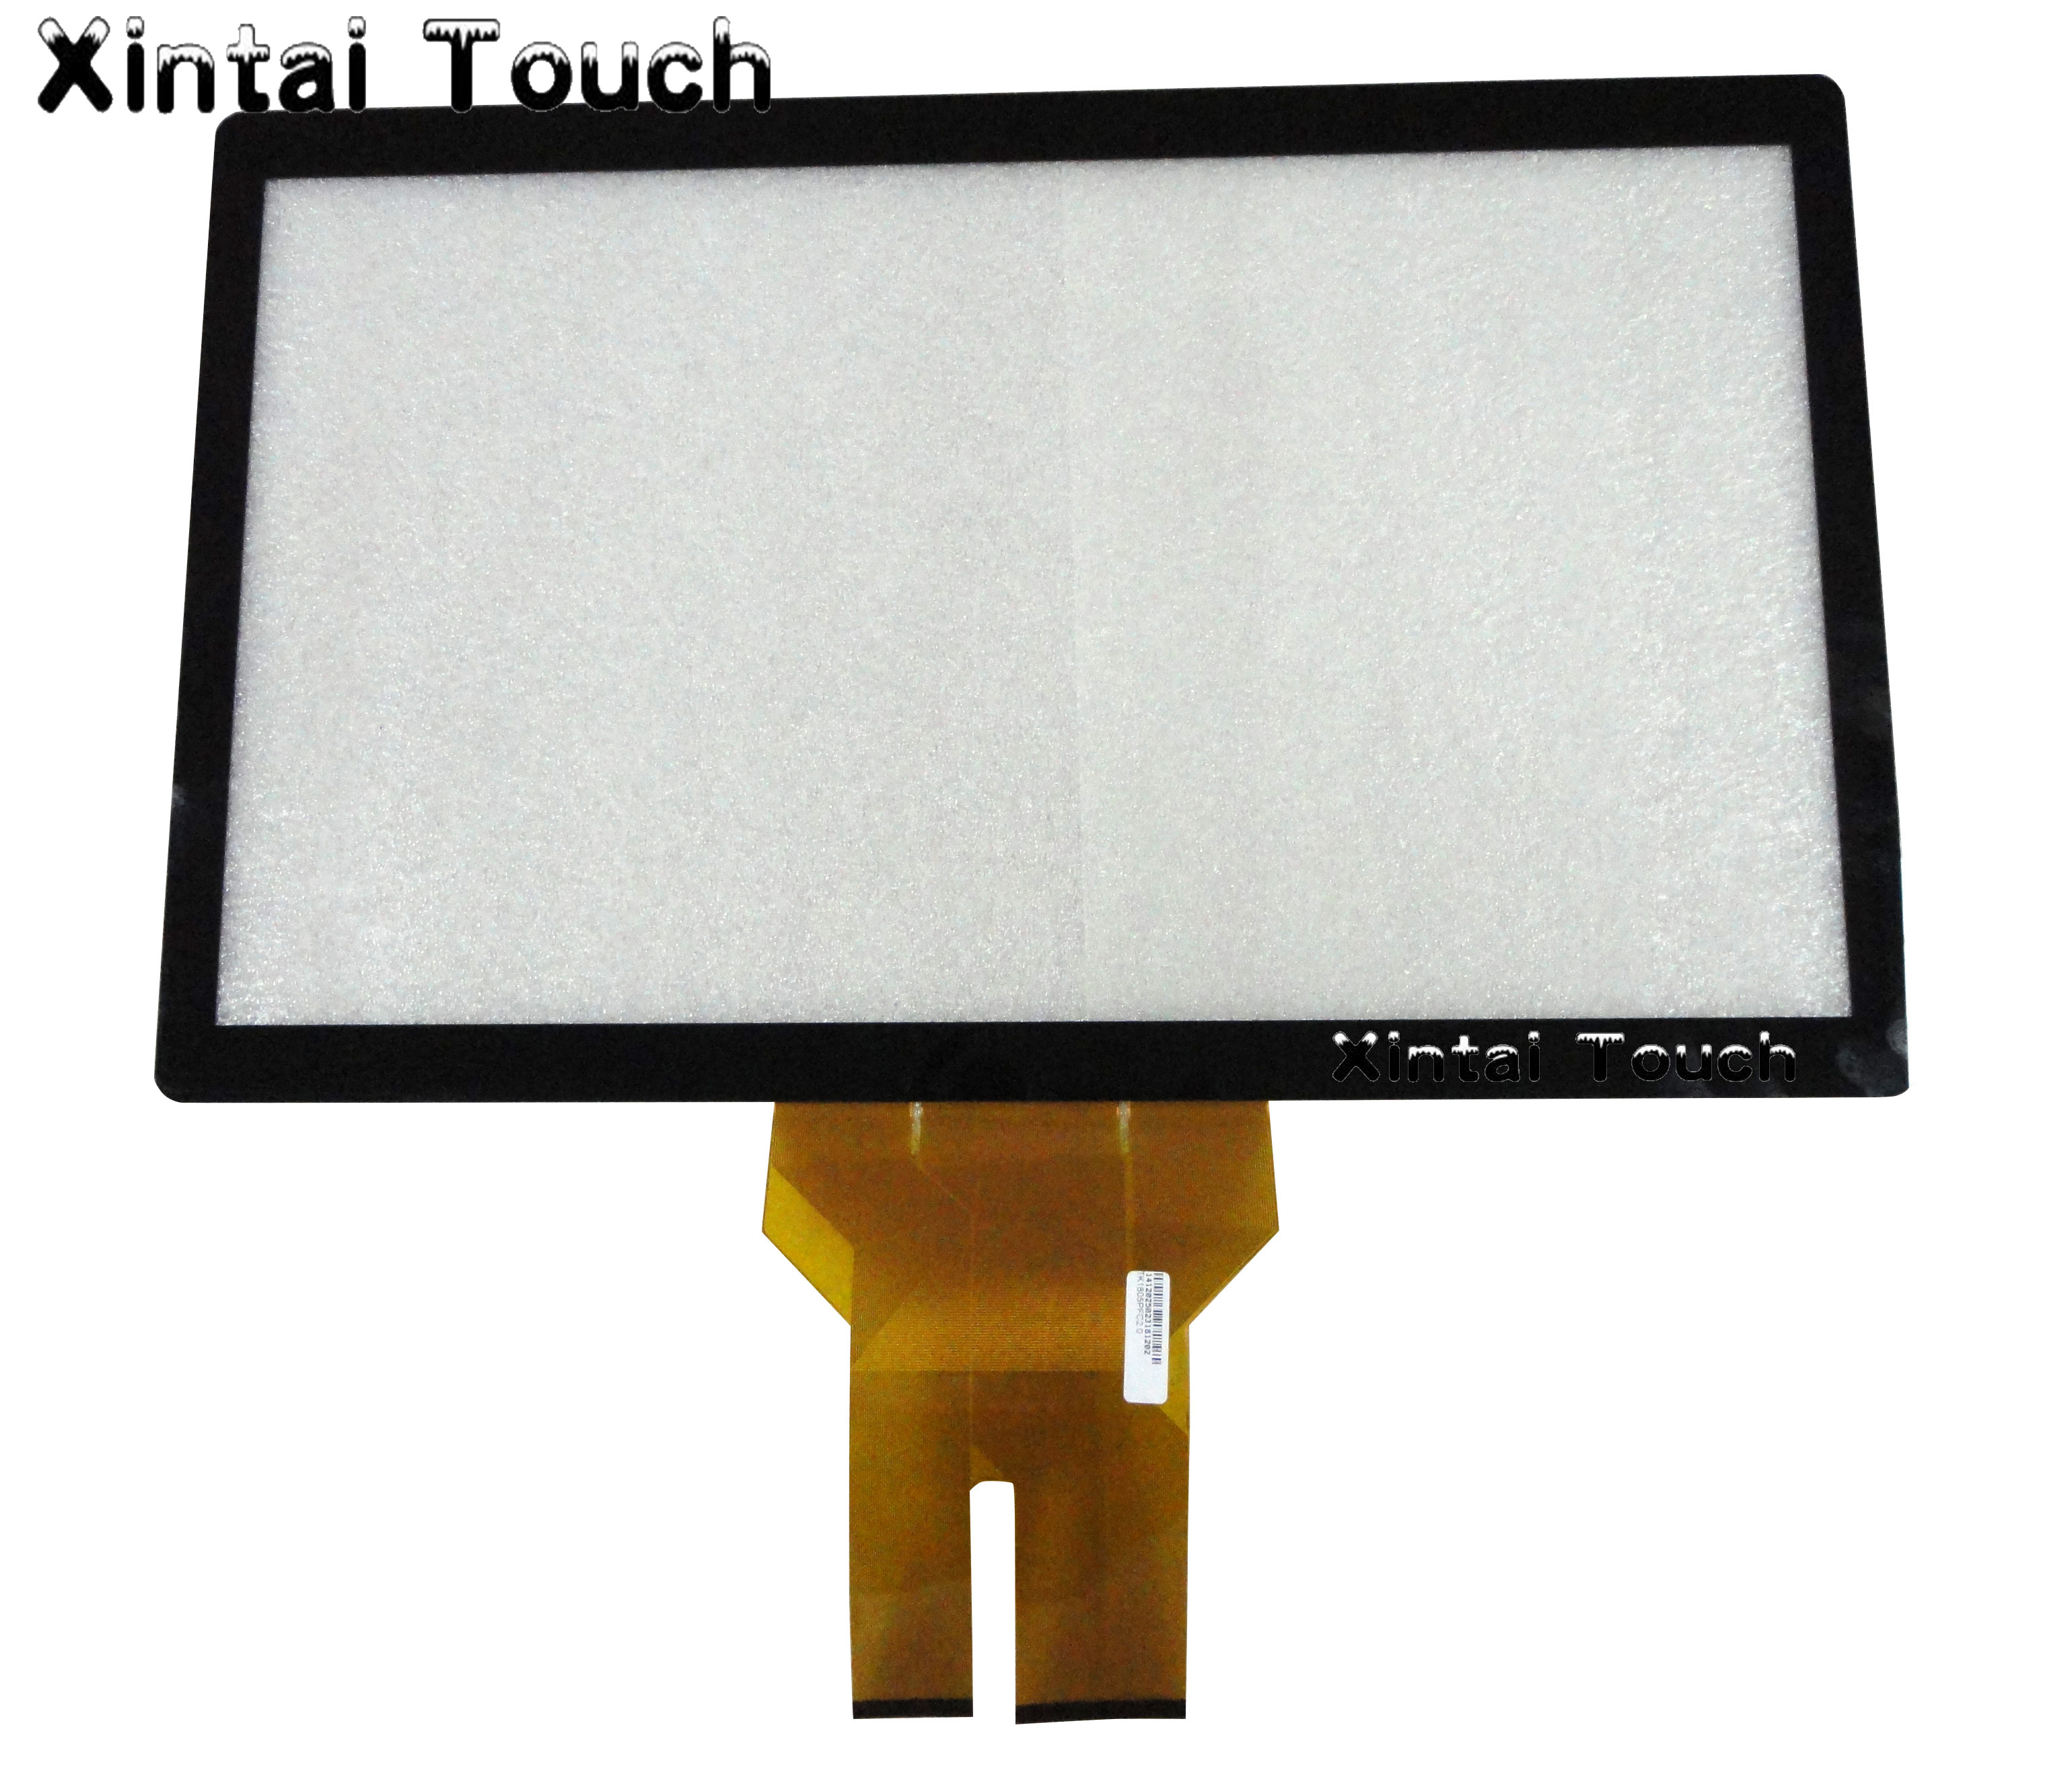 18.5 inch cheap Multi capacitive touch screen with glass/ capacitive touch screen overlay panel kit for touch table, kiosk etc 10 1 inch capacitive touch screen usb interface multi touch screen capacitive control card 10 1 inch touch screen